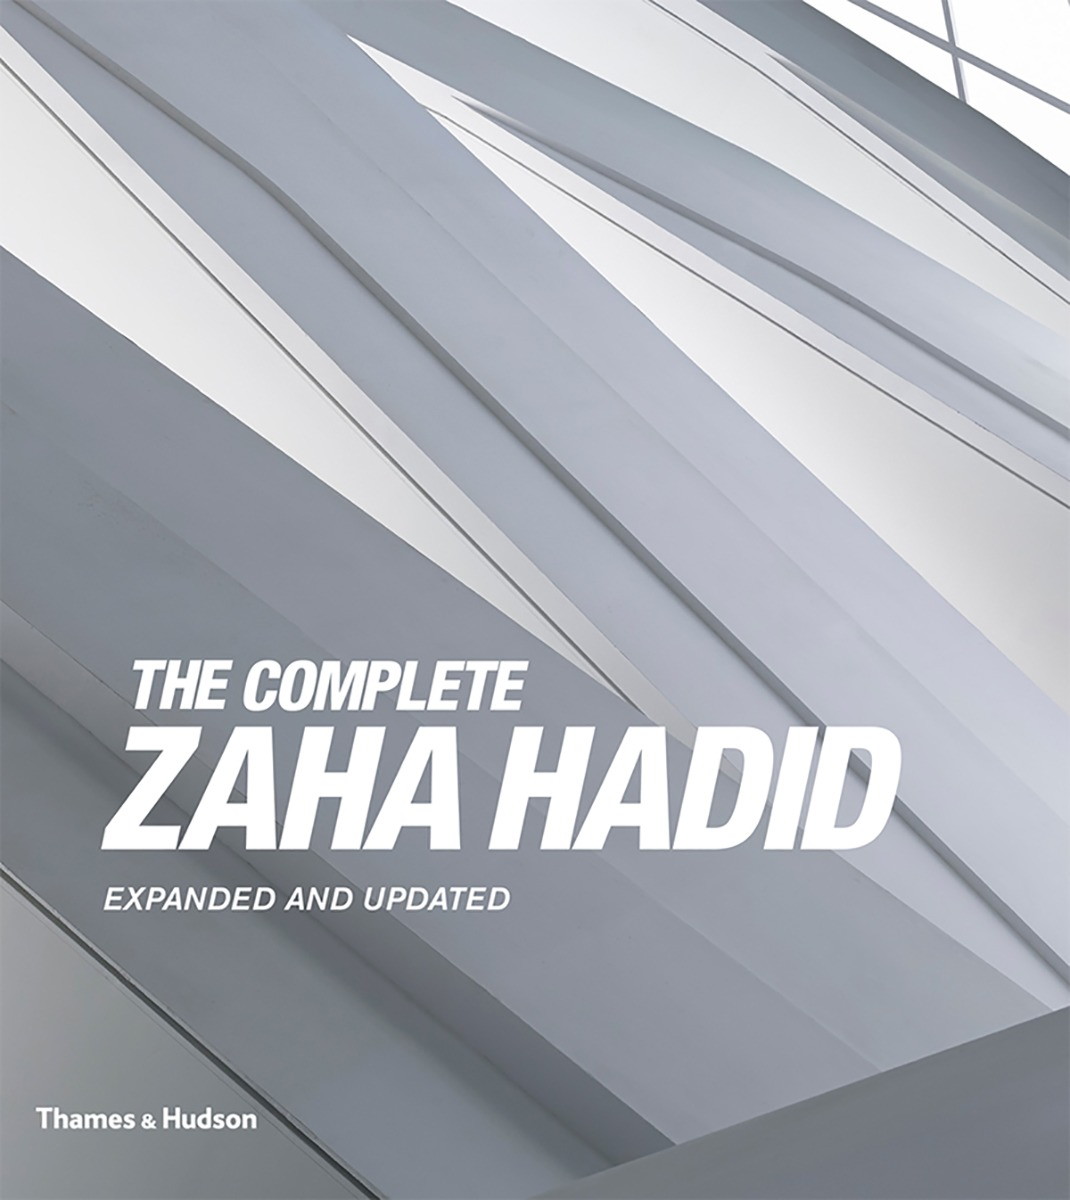 The Complete Zaha Hadid (Hardcover)